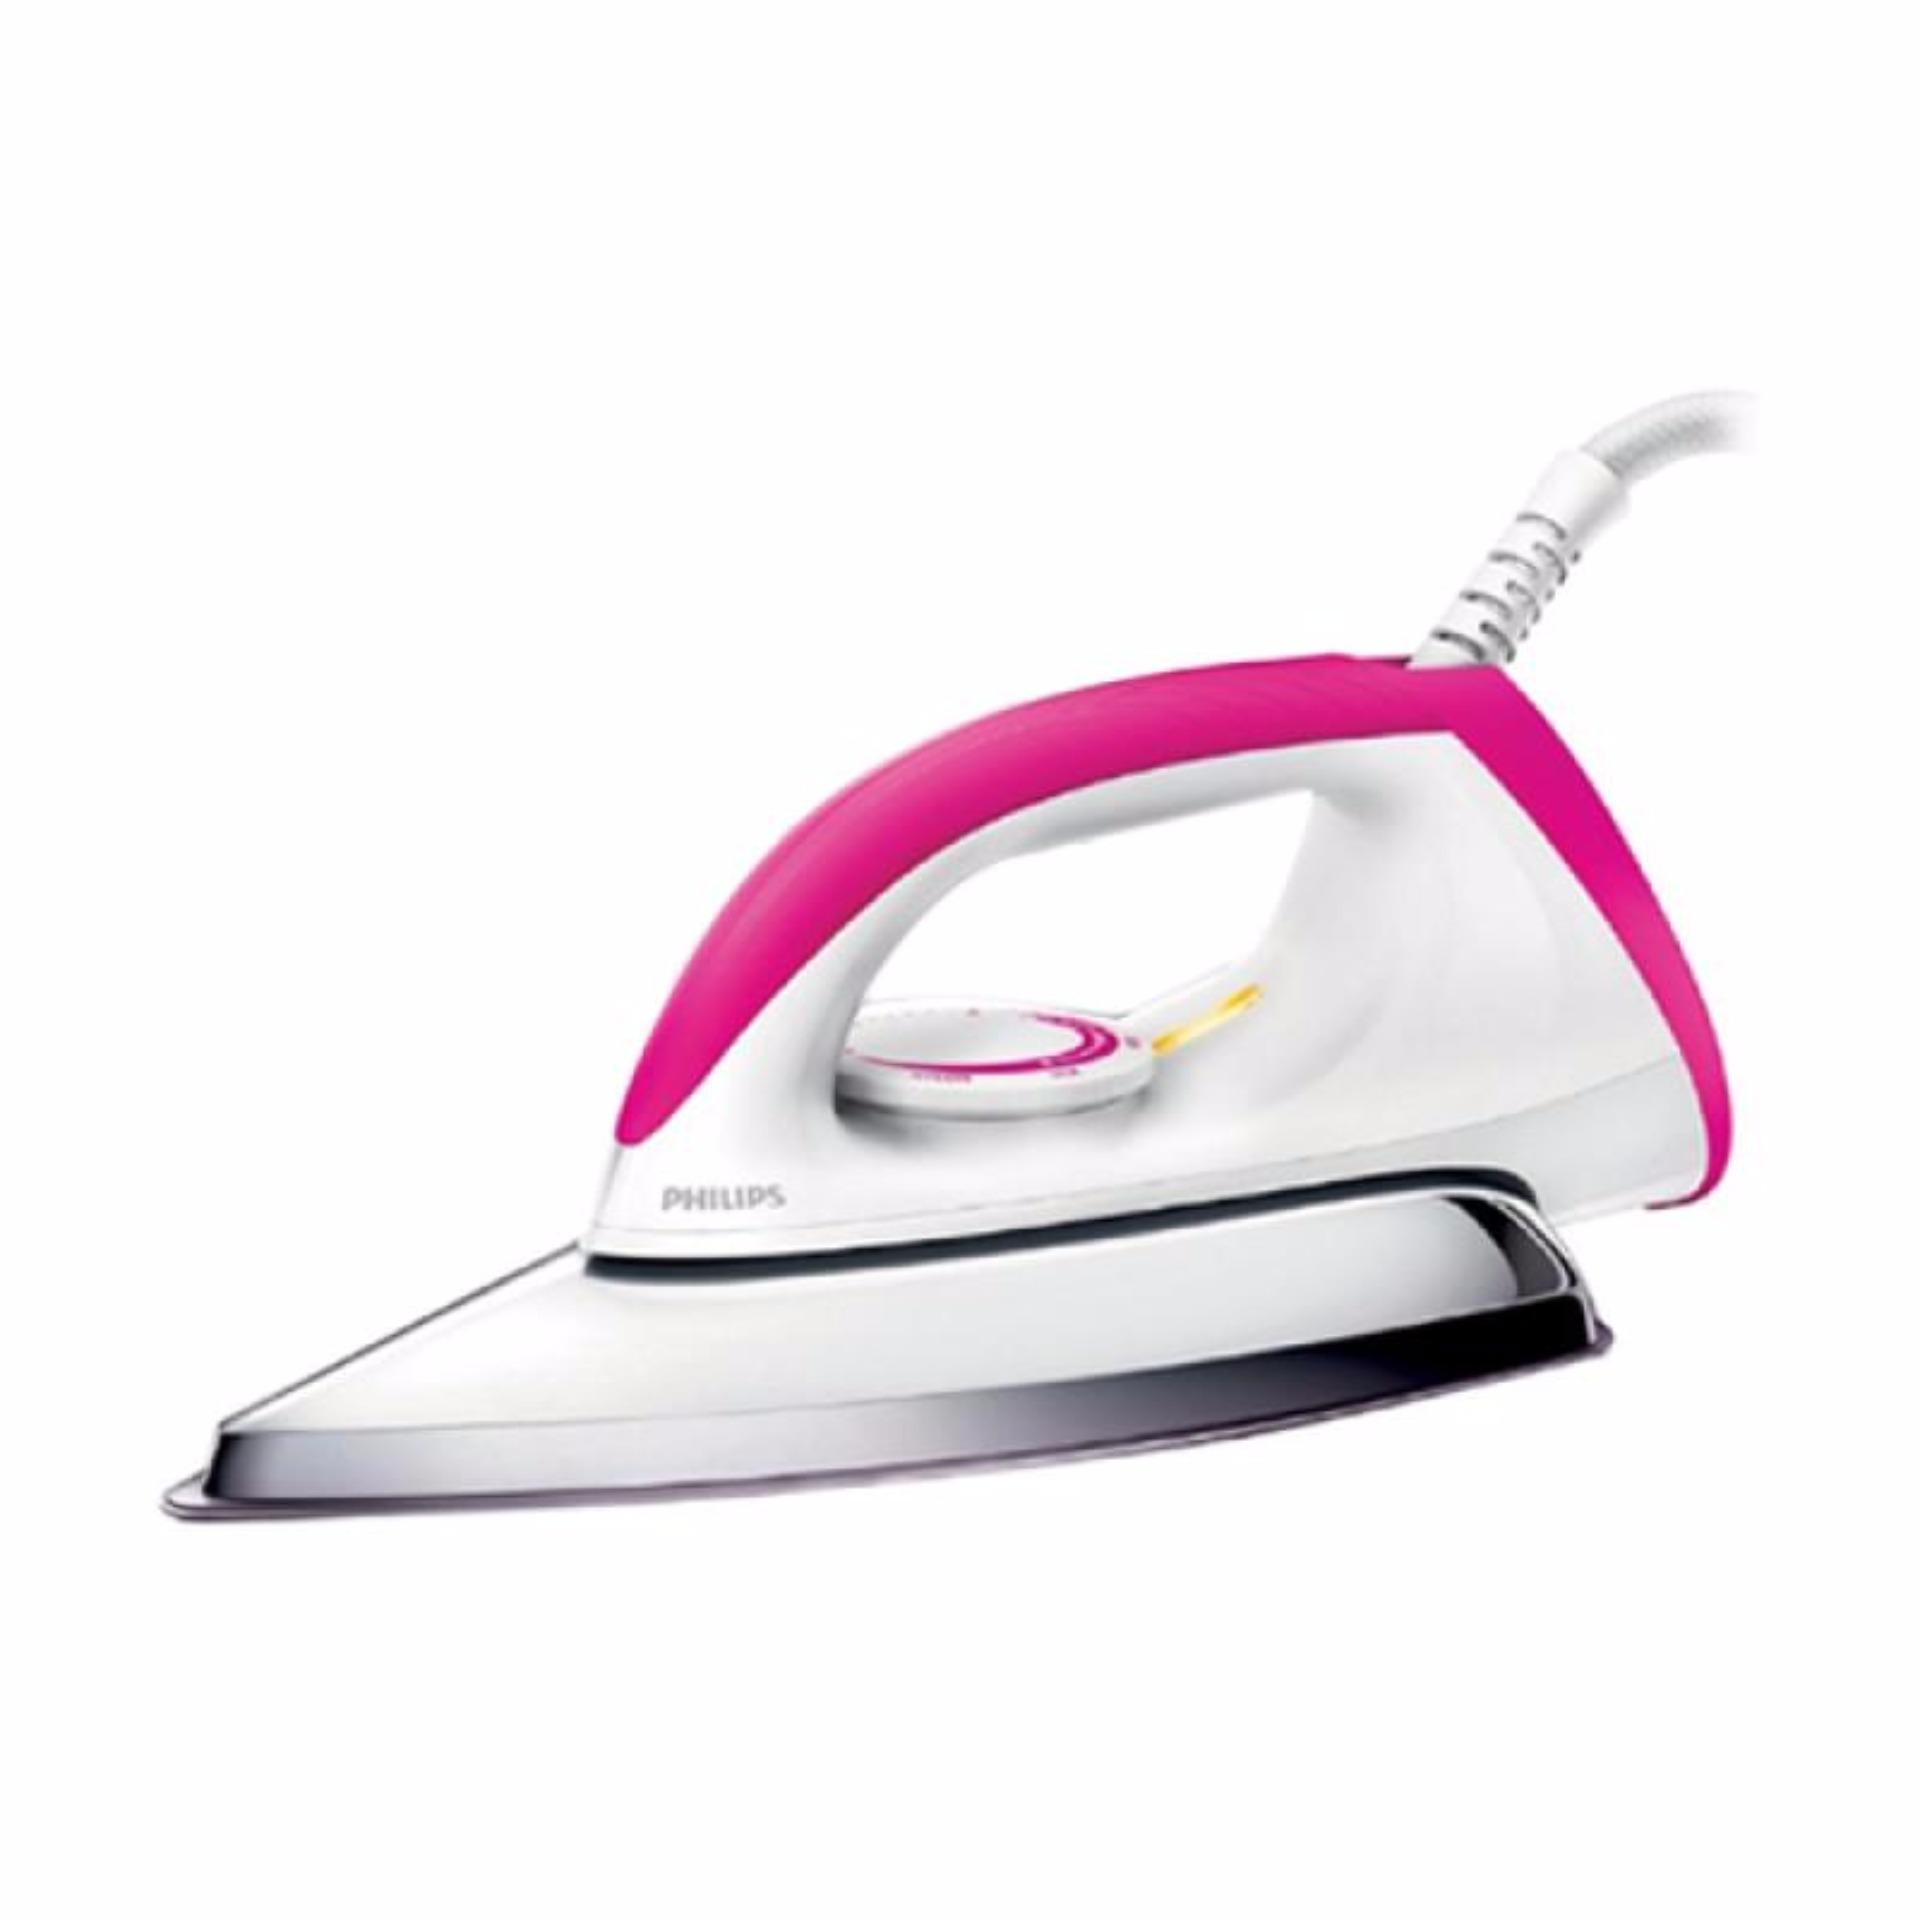 philips dry iron hd 1173